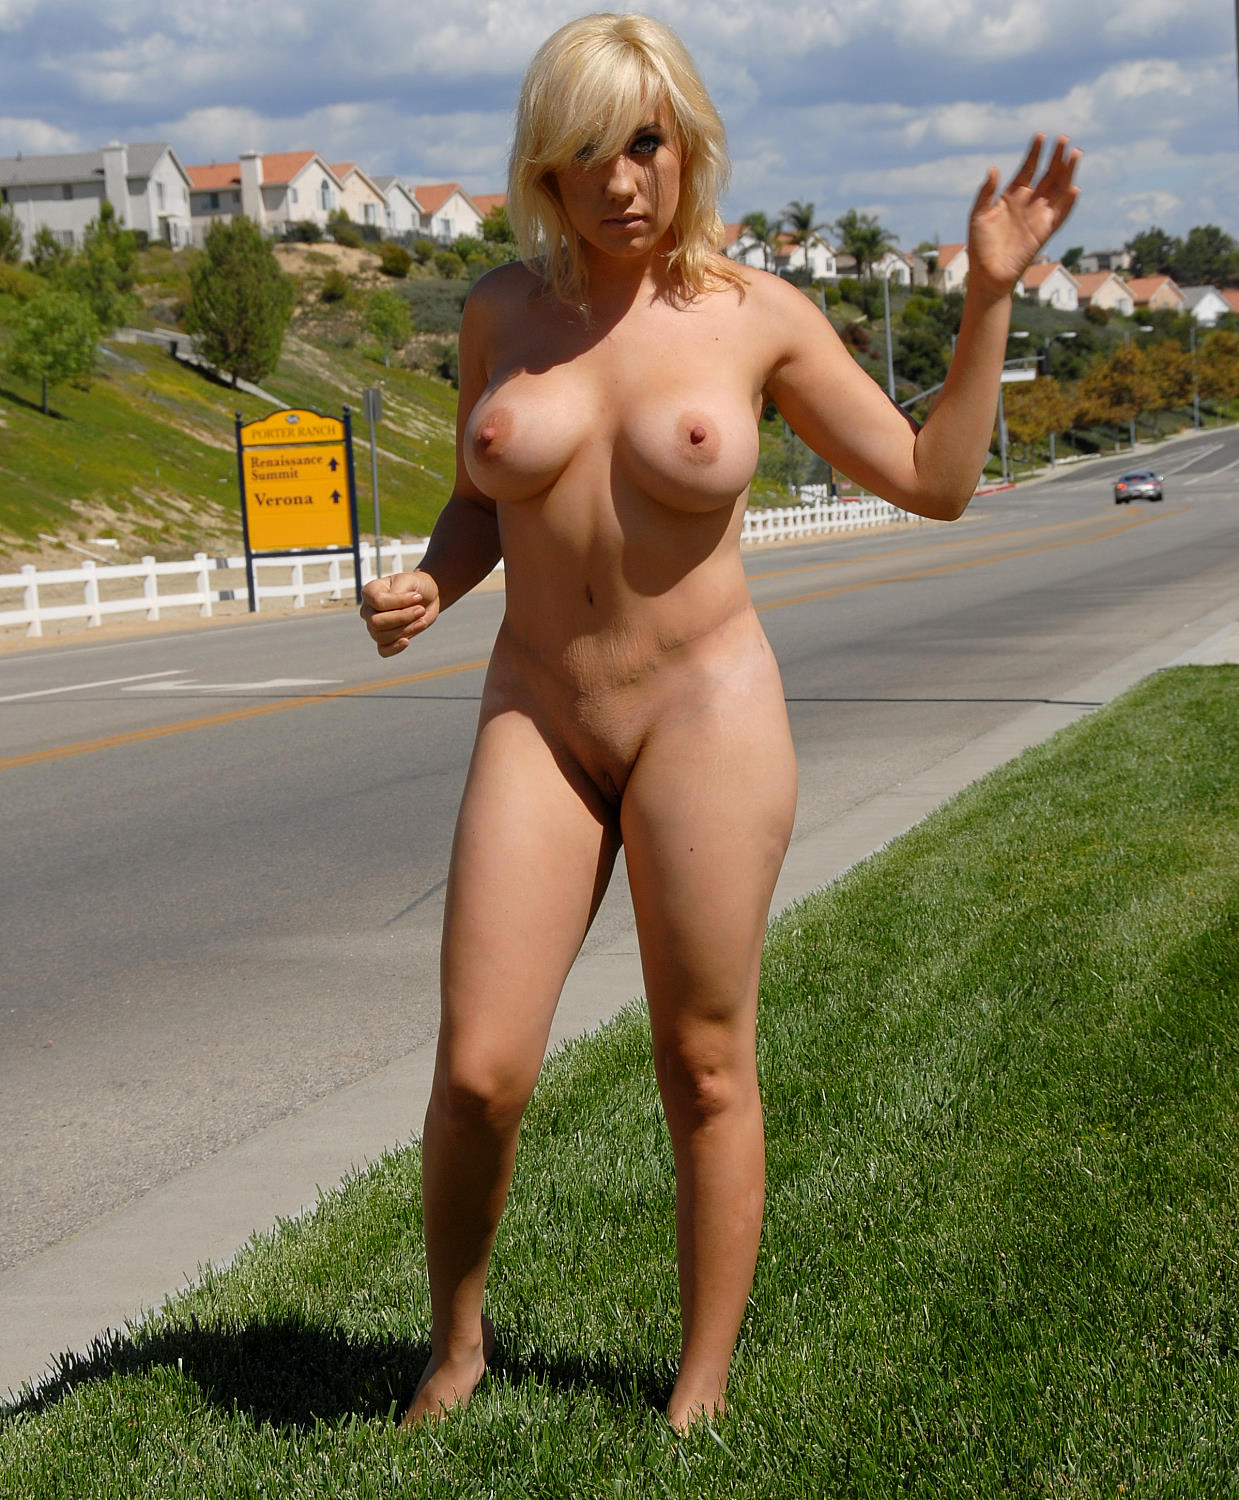 Naked across america as samantha travels to san francisco